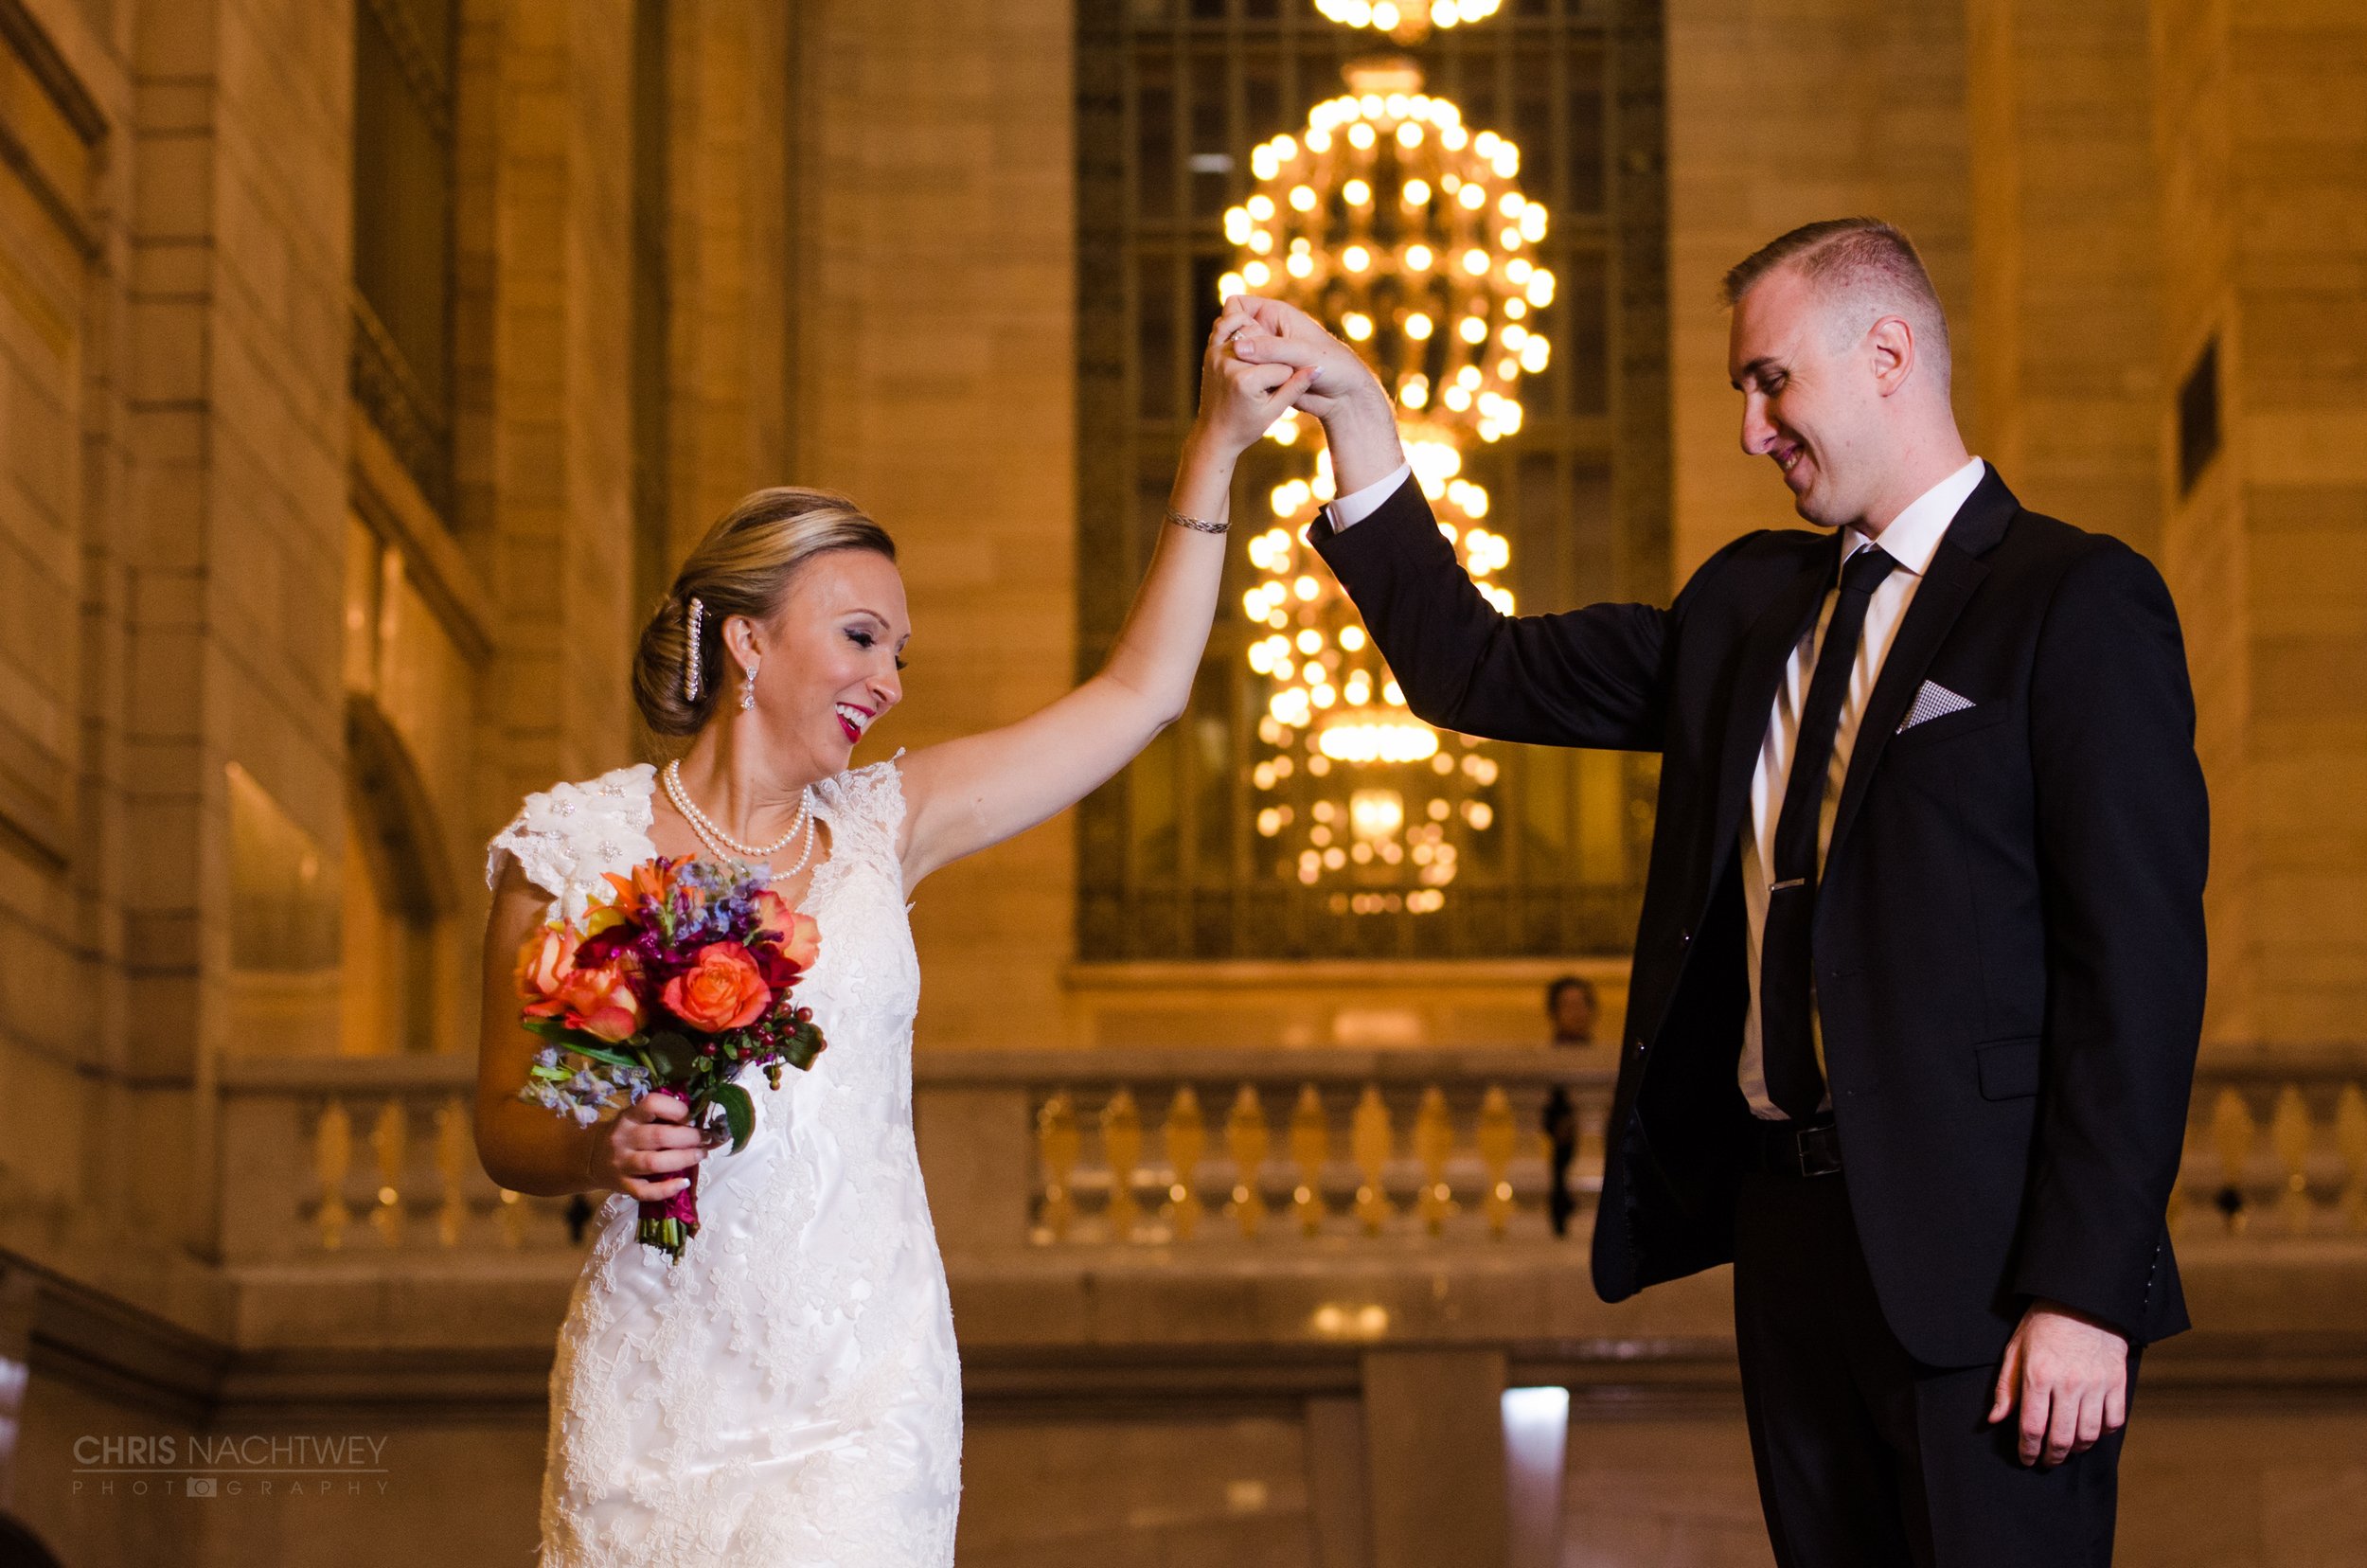 grand-central-station-wedding-photos-chris-nachtwey.jpg